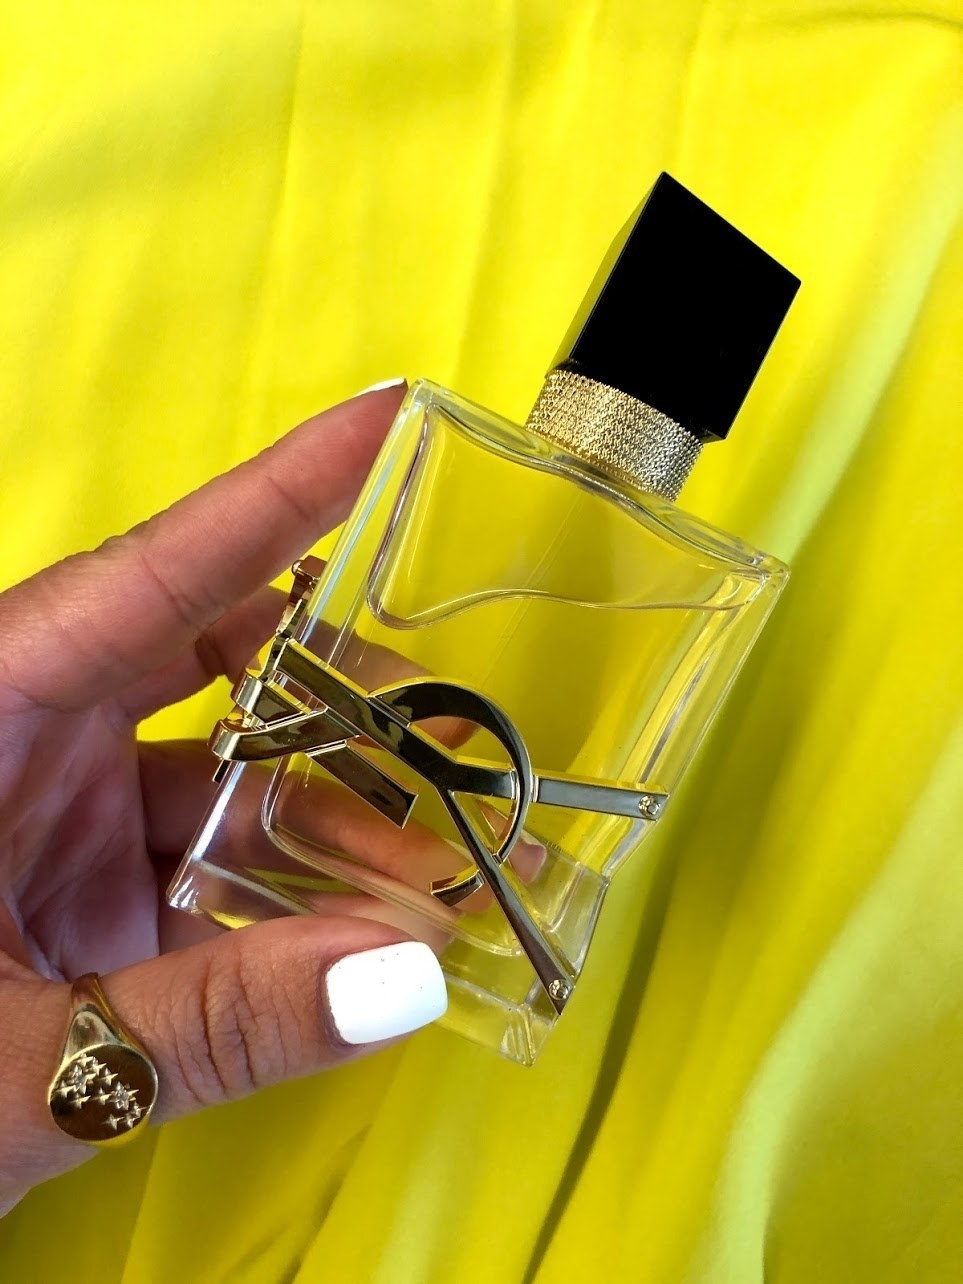 BuzzFeed Shopping member holding the full-size perfume